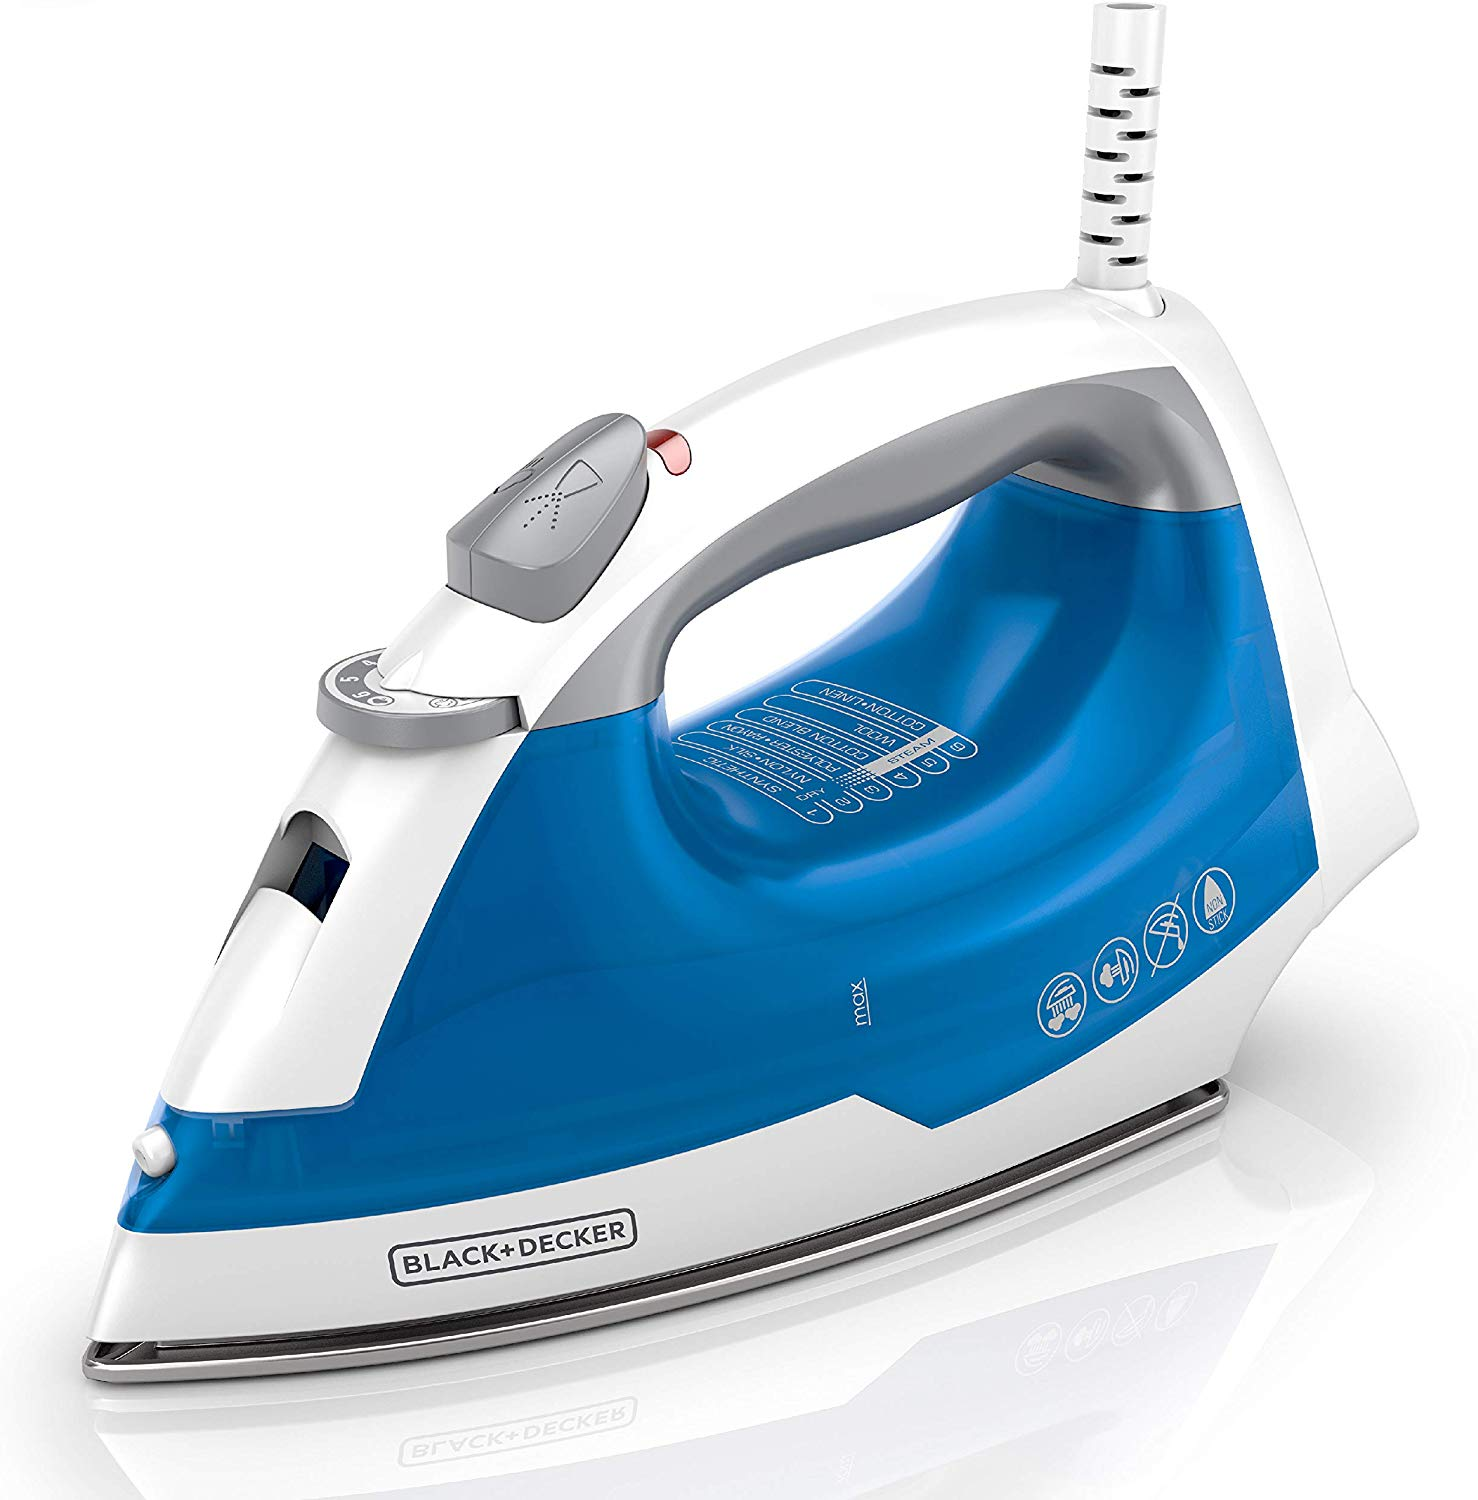 Best small steam iron review